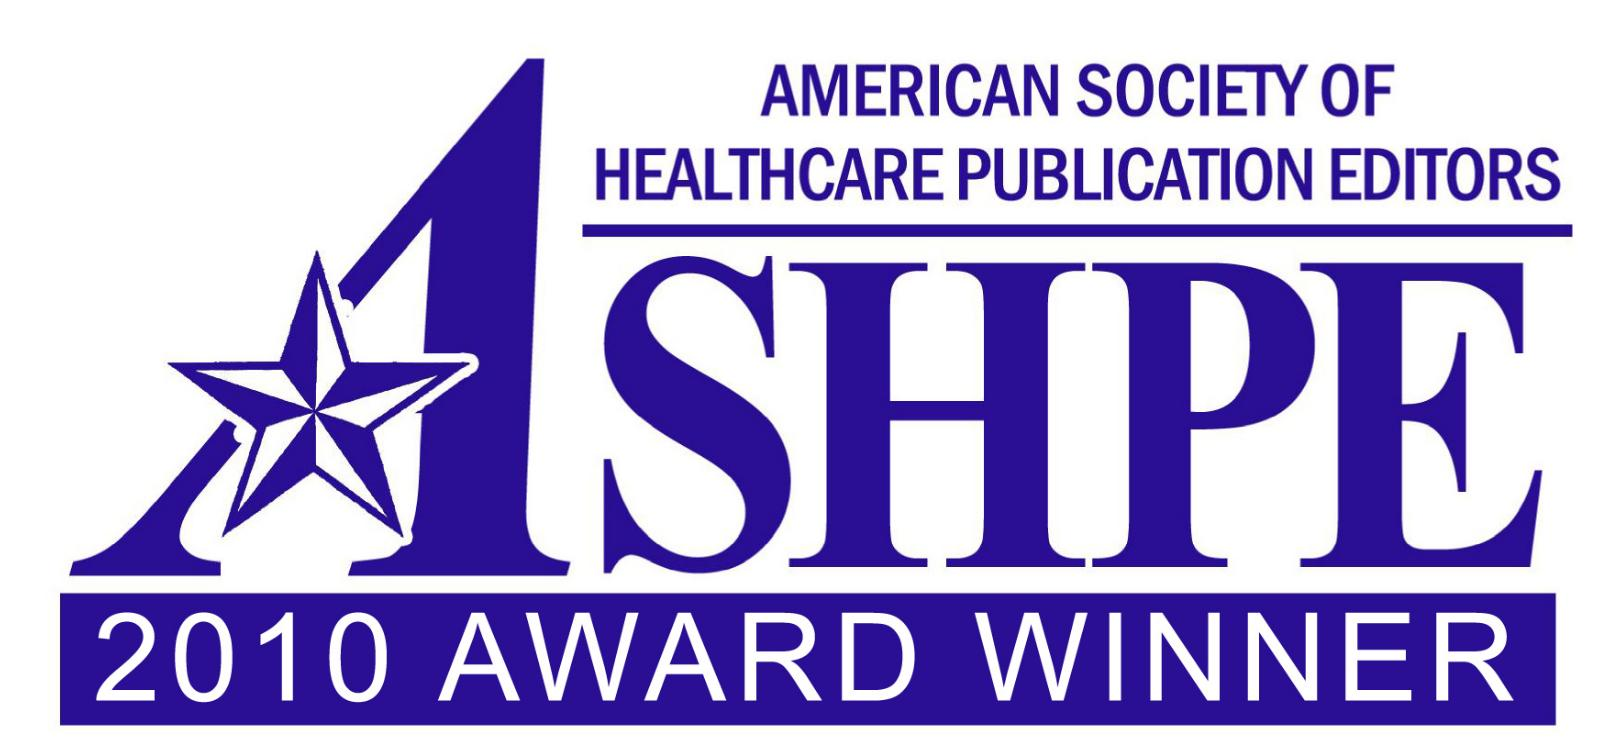 Clinical Correlations Wins 2010 Gold Award as Best Blog from the American Society of Healthcare Publication Editors